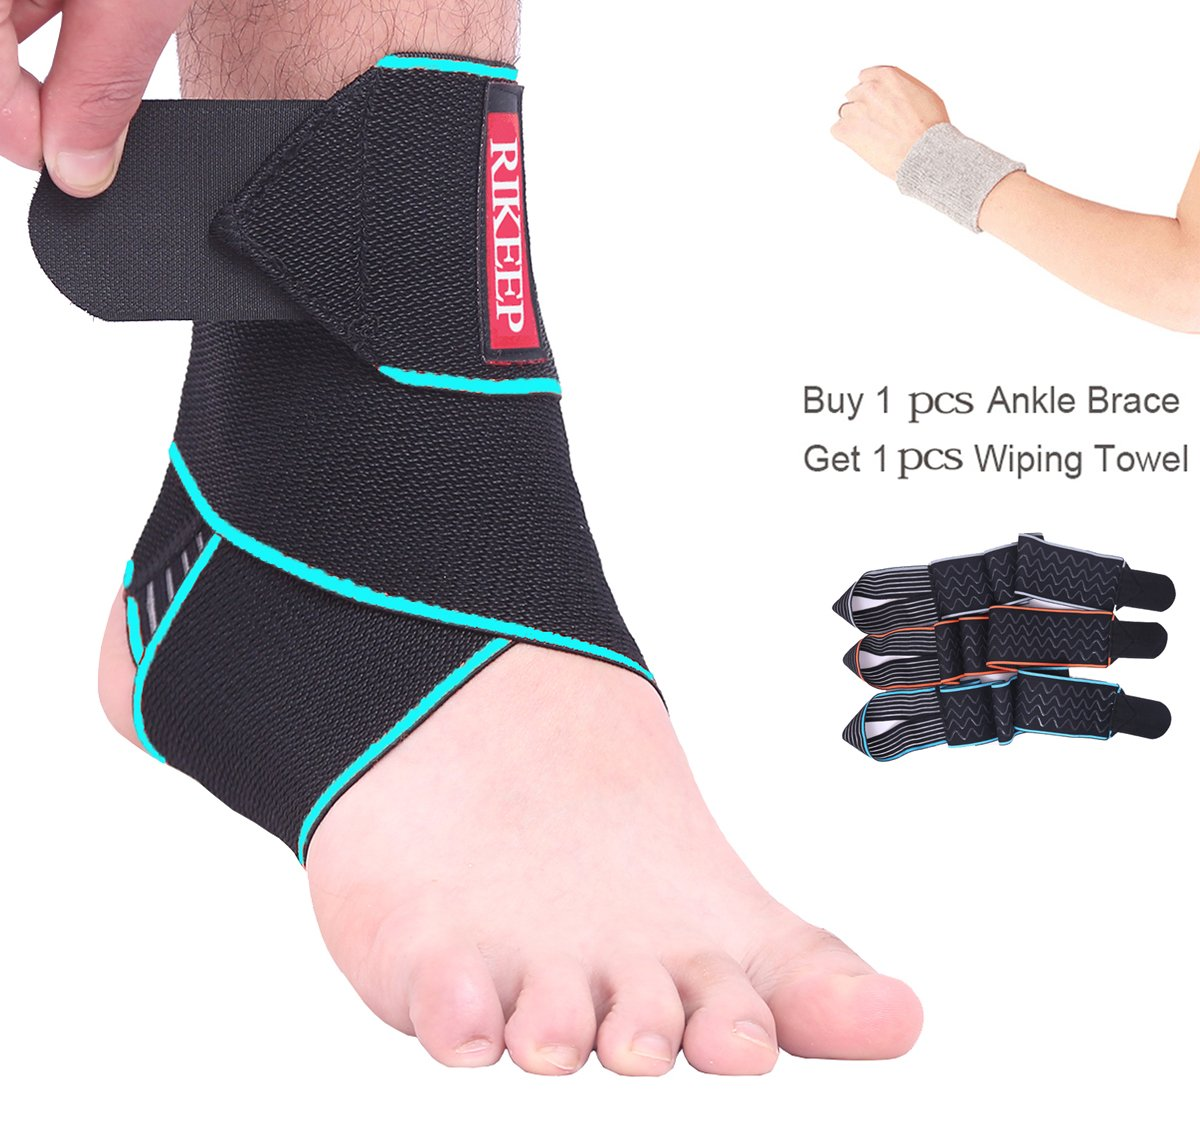 ac9a740969f Amazon.com  Adjustable Ankle Support (EA)  Health   Personal Care